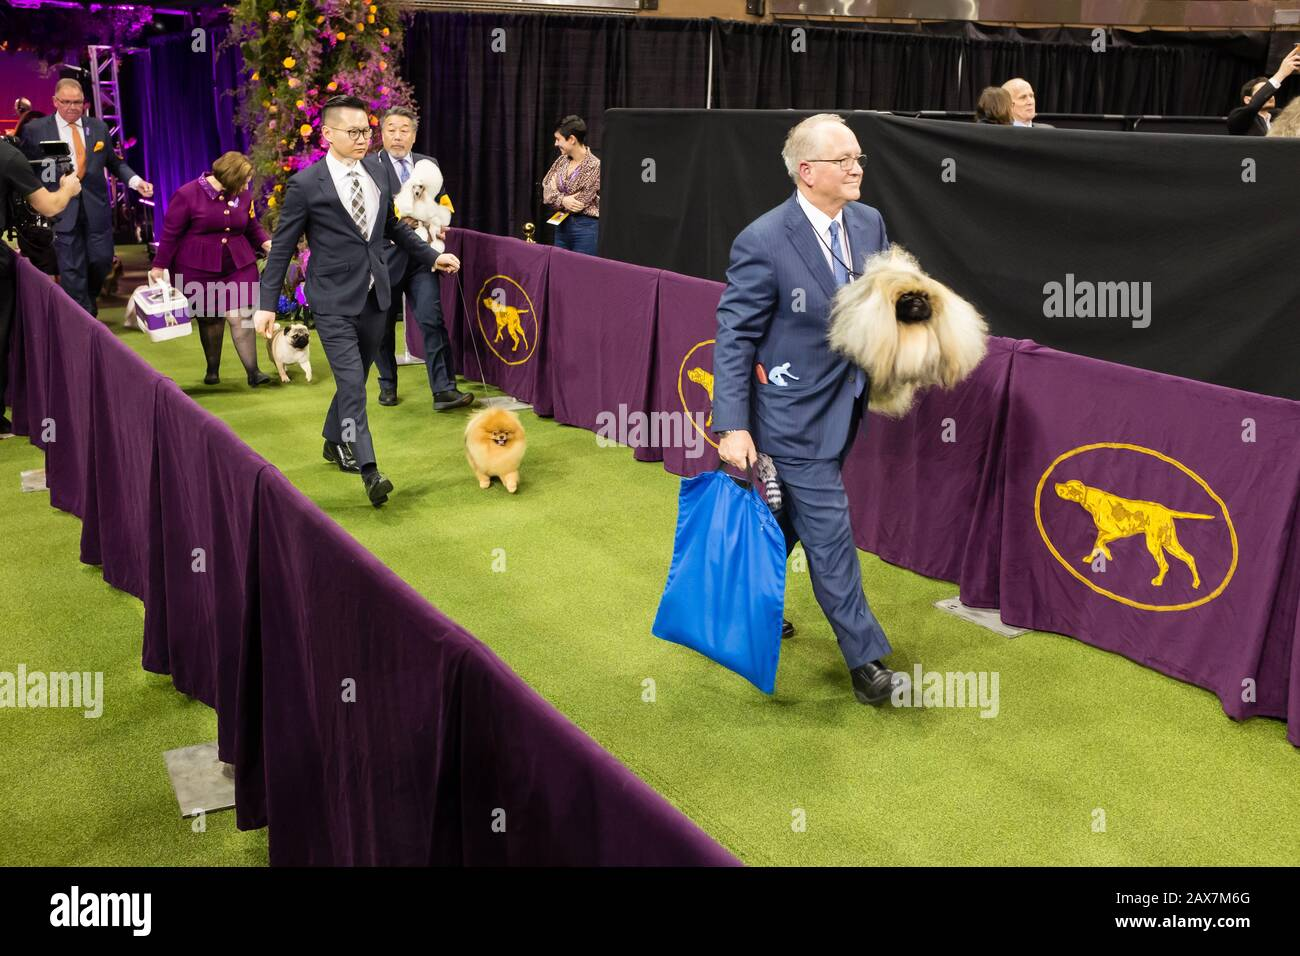 New York, NY, USA. 10th Feb, 2020. The toy group enters the show ring at the 144th Westminster Kennel Club Dog show at New York's Madison Square Garden. Credit: Ed Lefkowicz/Alamy Live News Stock Photo